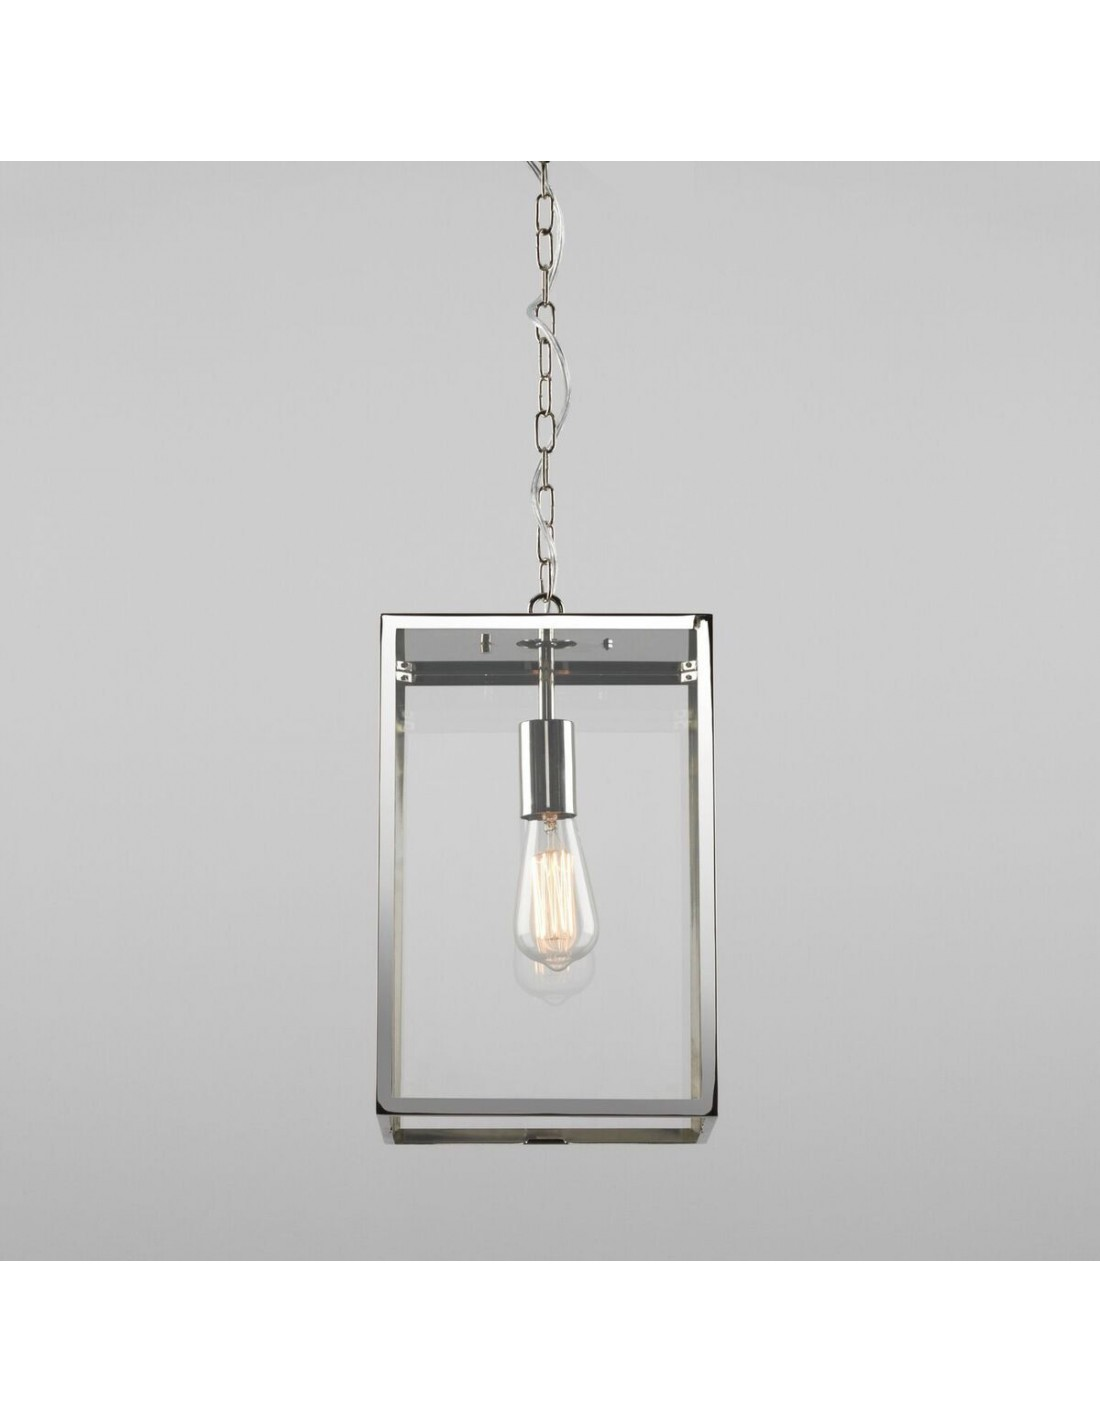 Suspension Homefield pendant 240 Inox détails Astro Lighting